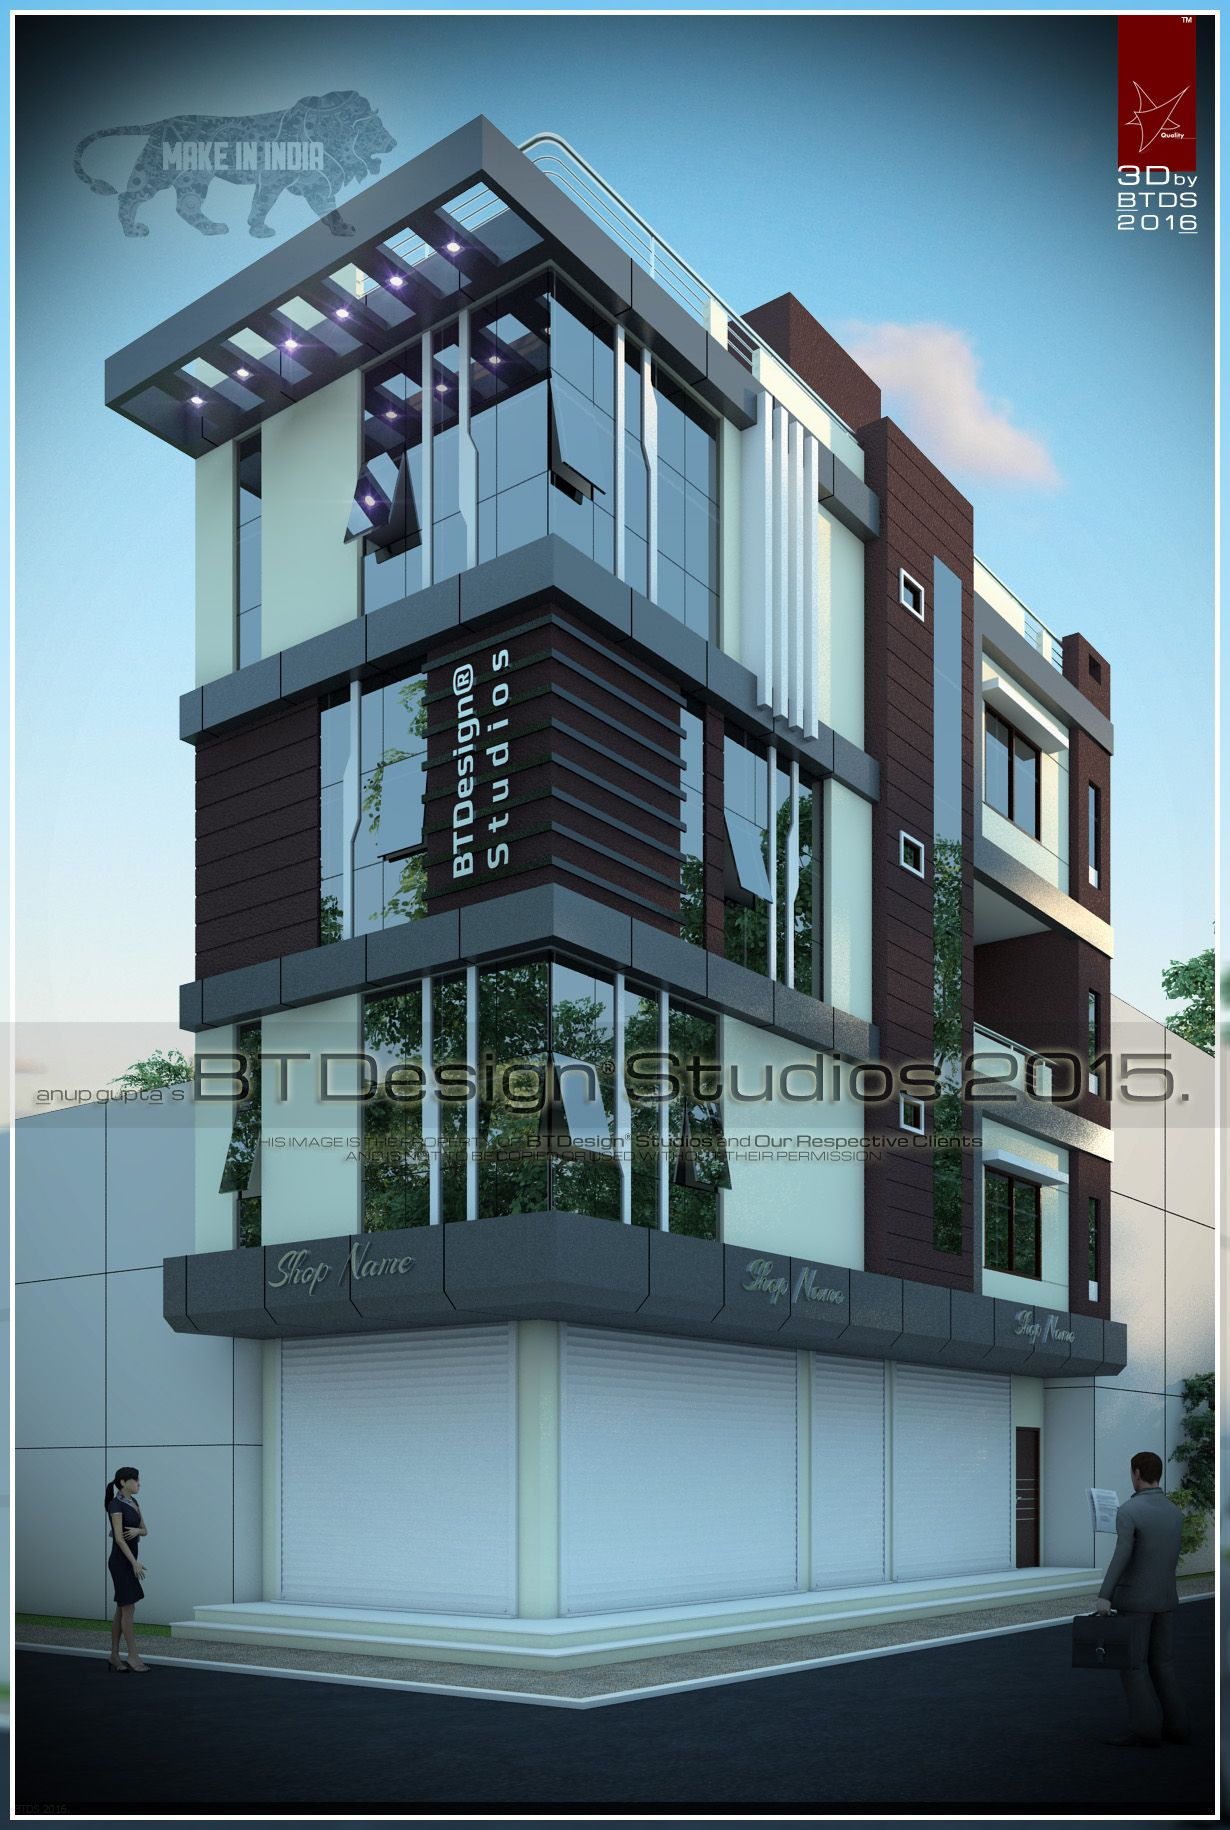 #elevation #exterior #3d #view #visualization #design #makeinindia  #btdesignstudios